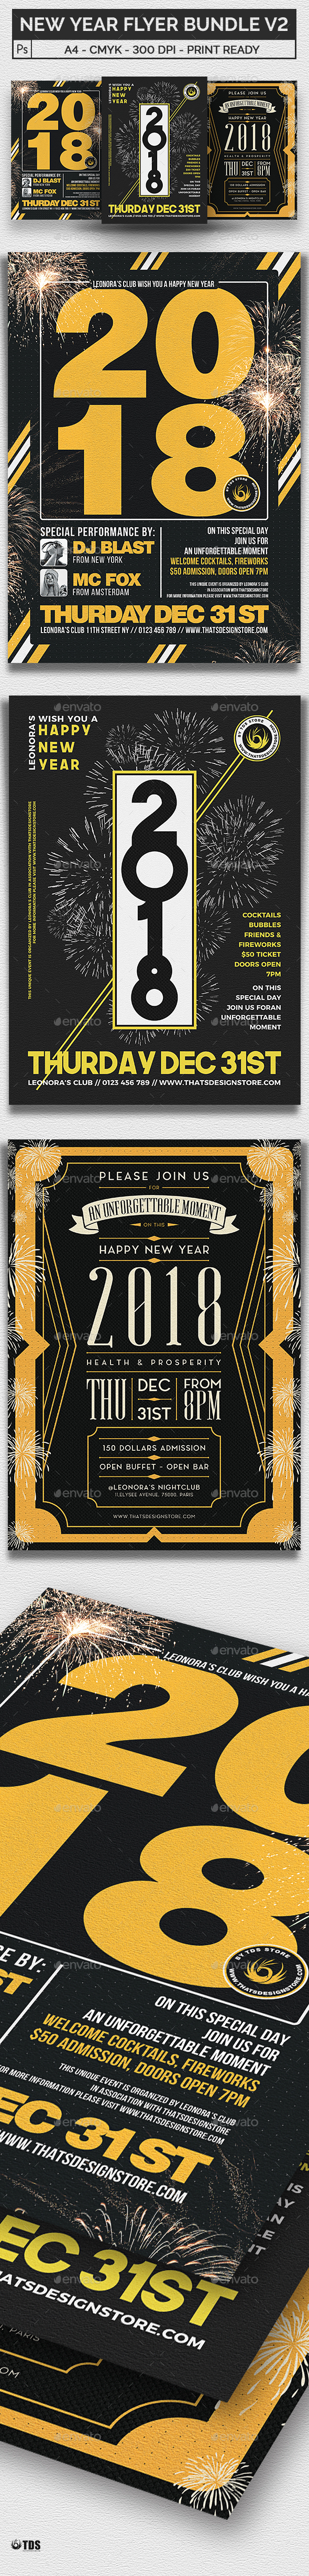 New Year Flyer Bundle V2 - Clubs & Parties Events